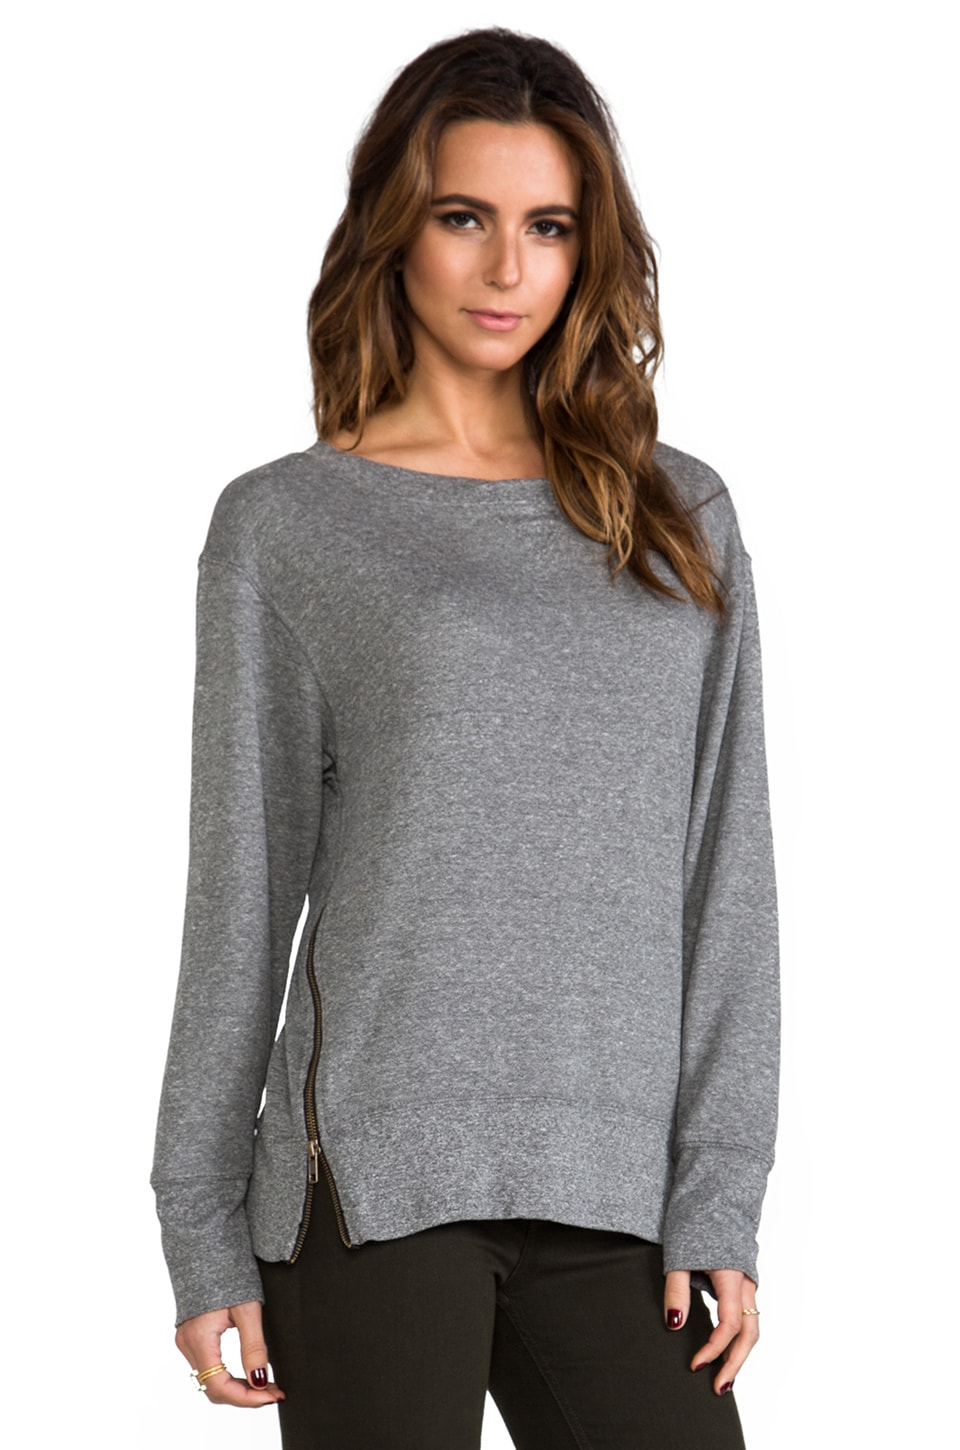 Current/Elliott The Stadium w/ Zips Sweatshirt in Heather Grey